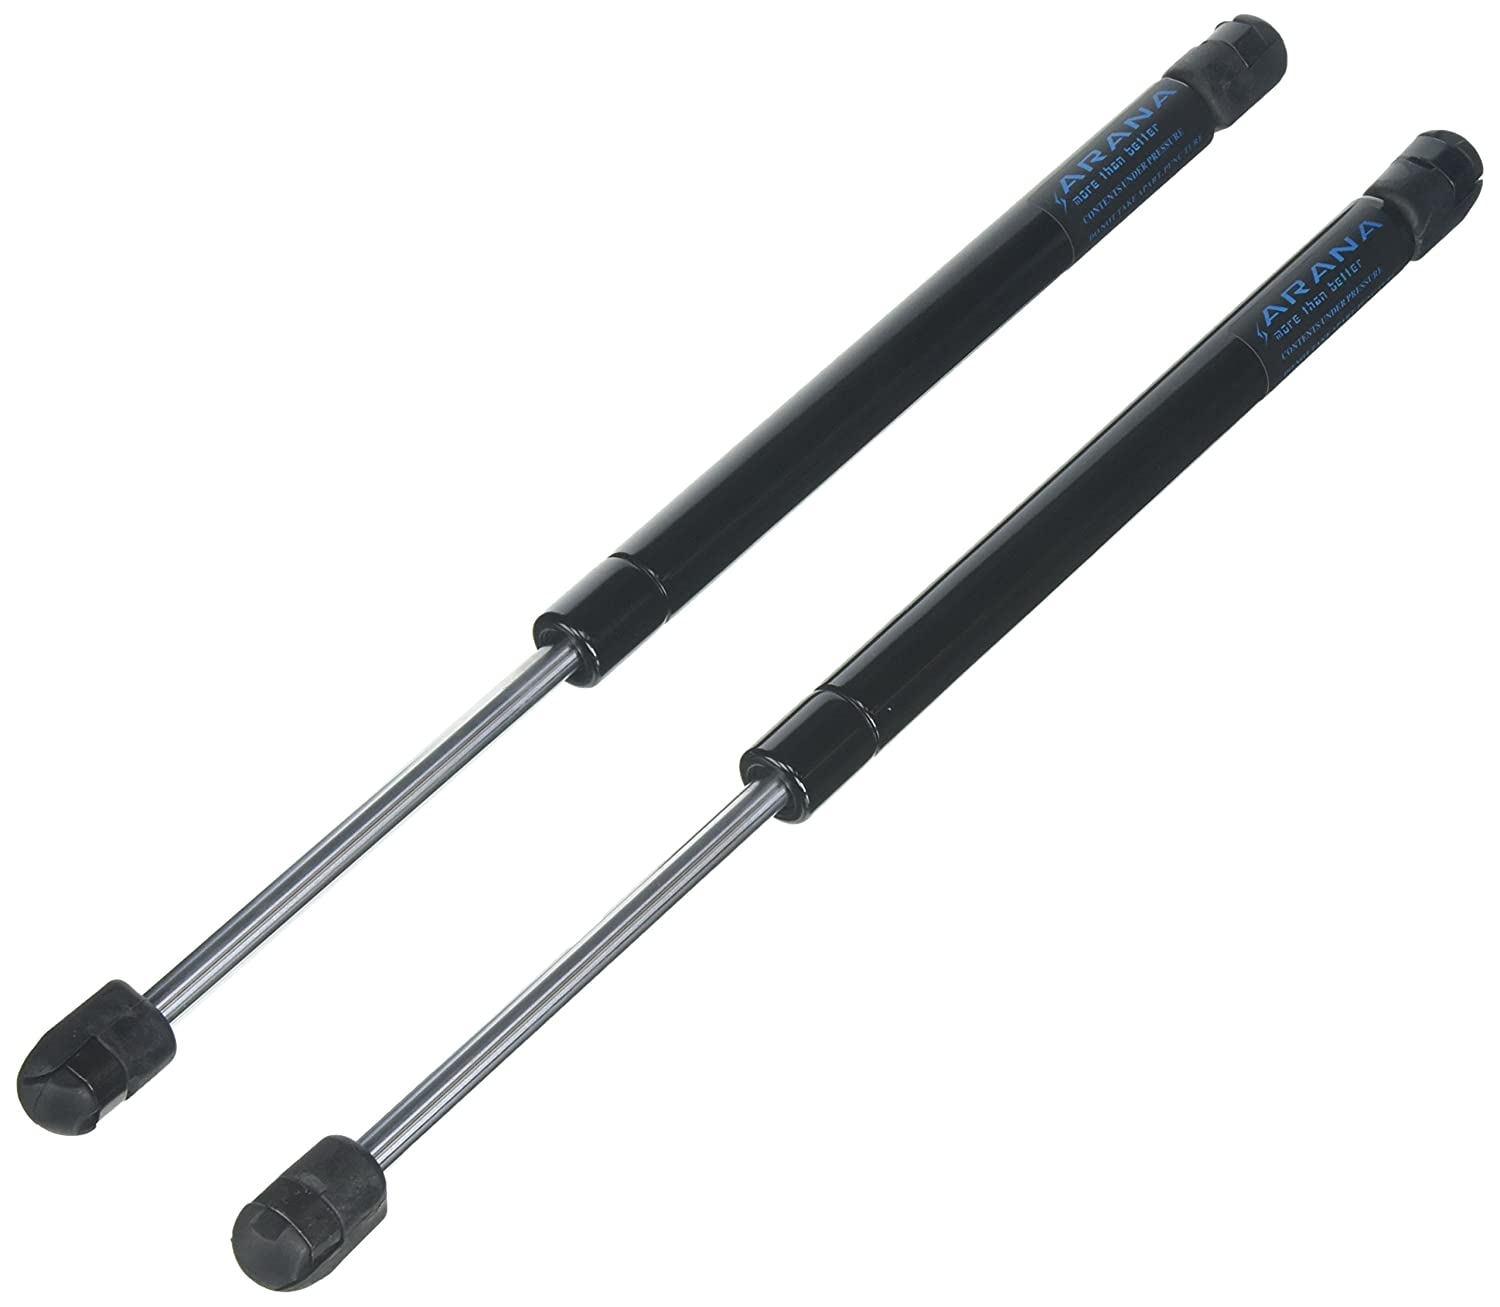 Qty 2 Lexus Es300 1997 To 2001 Toyota Camry 1998 1999 Fuel Filter Location 2000 Hood Lift Supports Struts Automotive